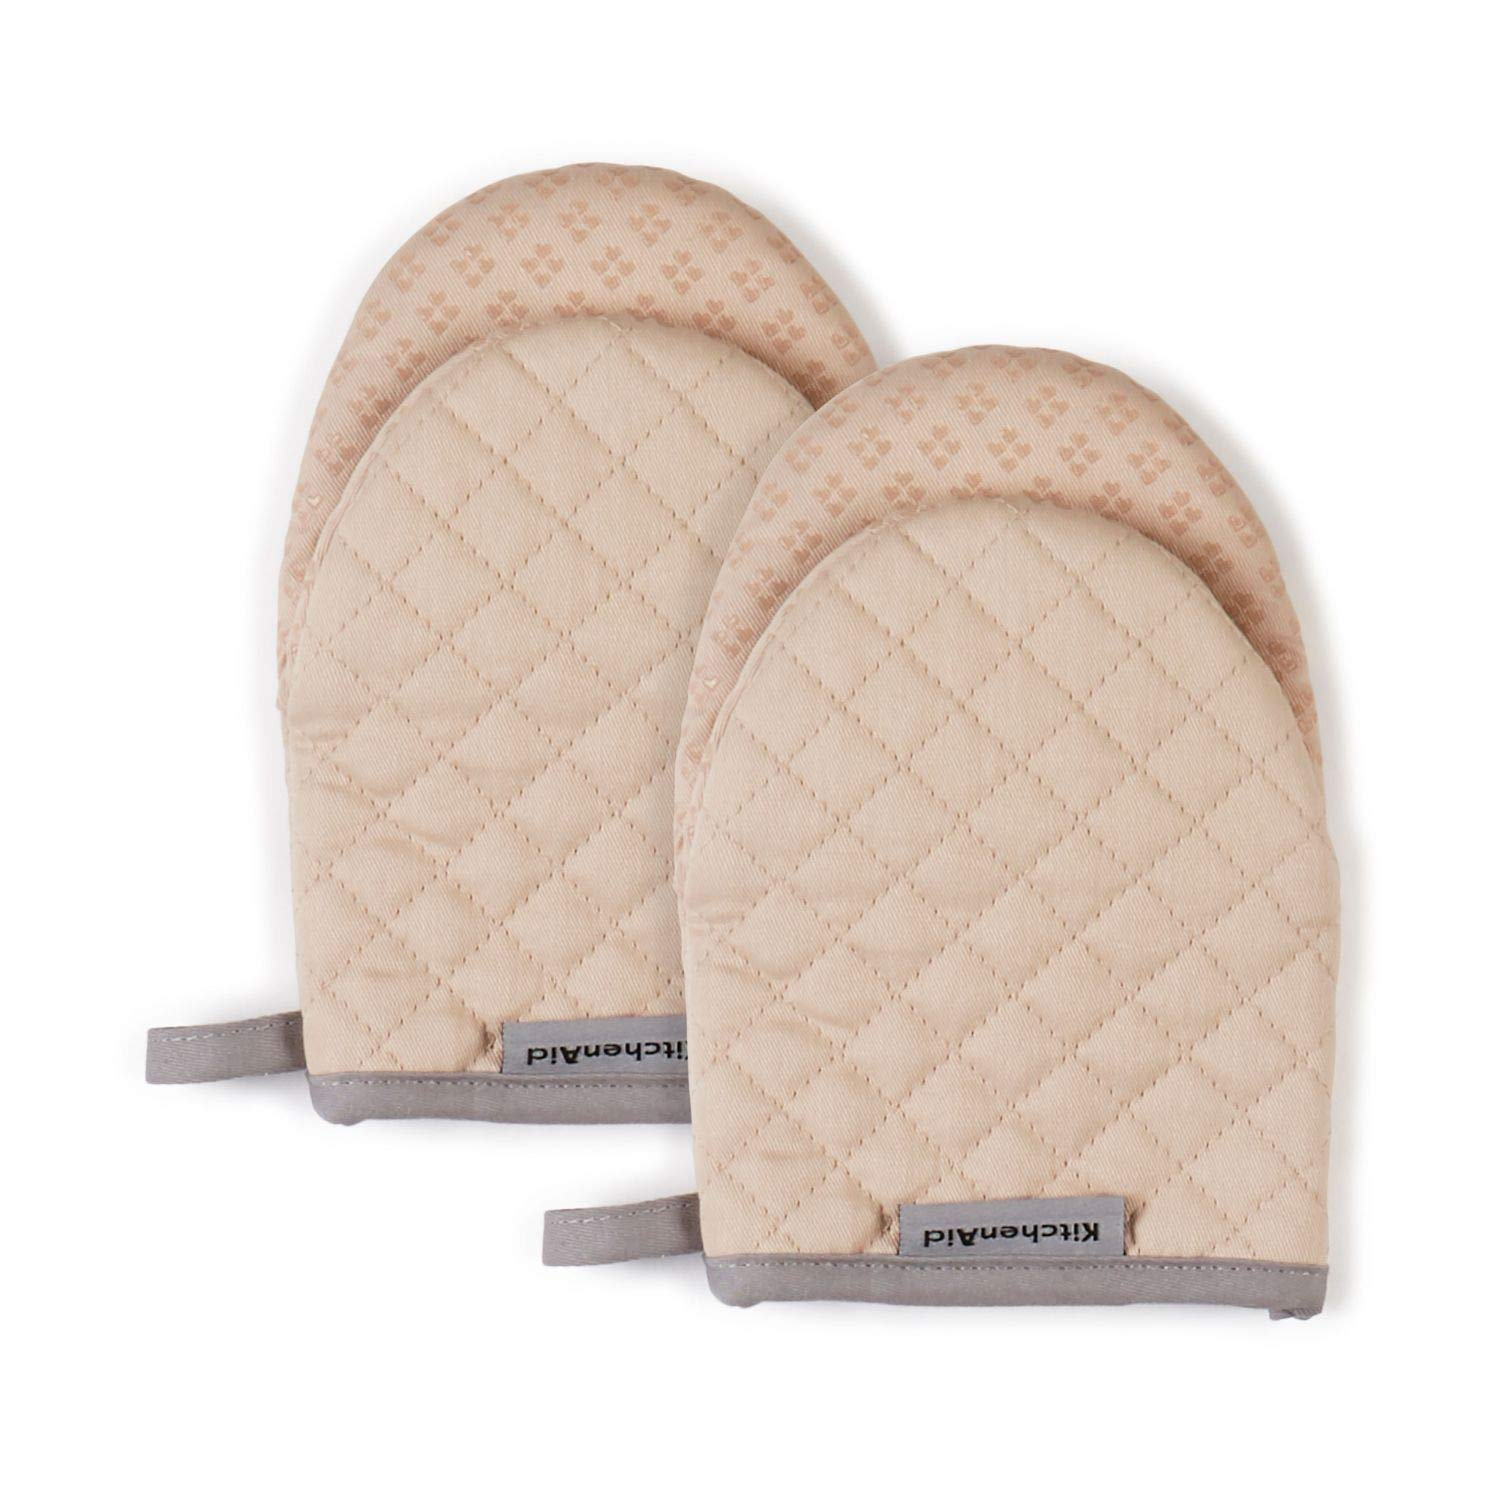 KitchenAid Asteroid Mini Cotton Oven Mitts with Silicone Grip, Set of 2, Beige